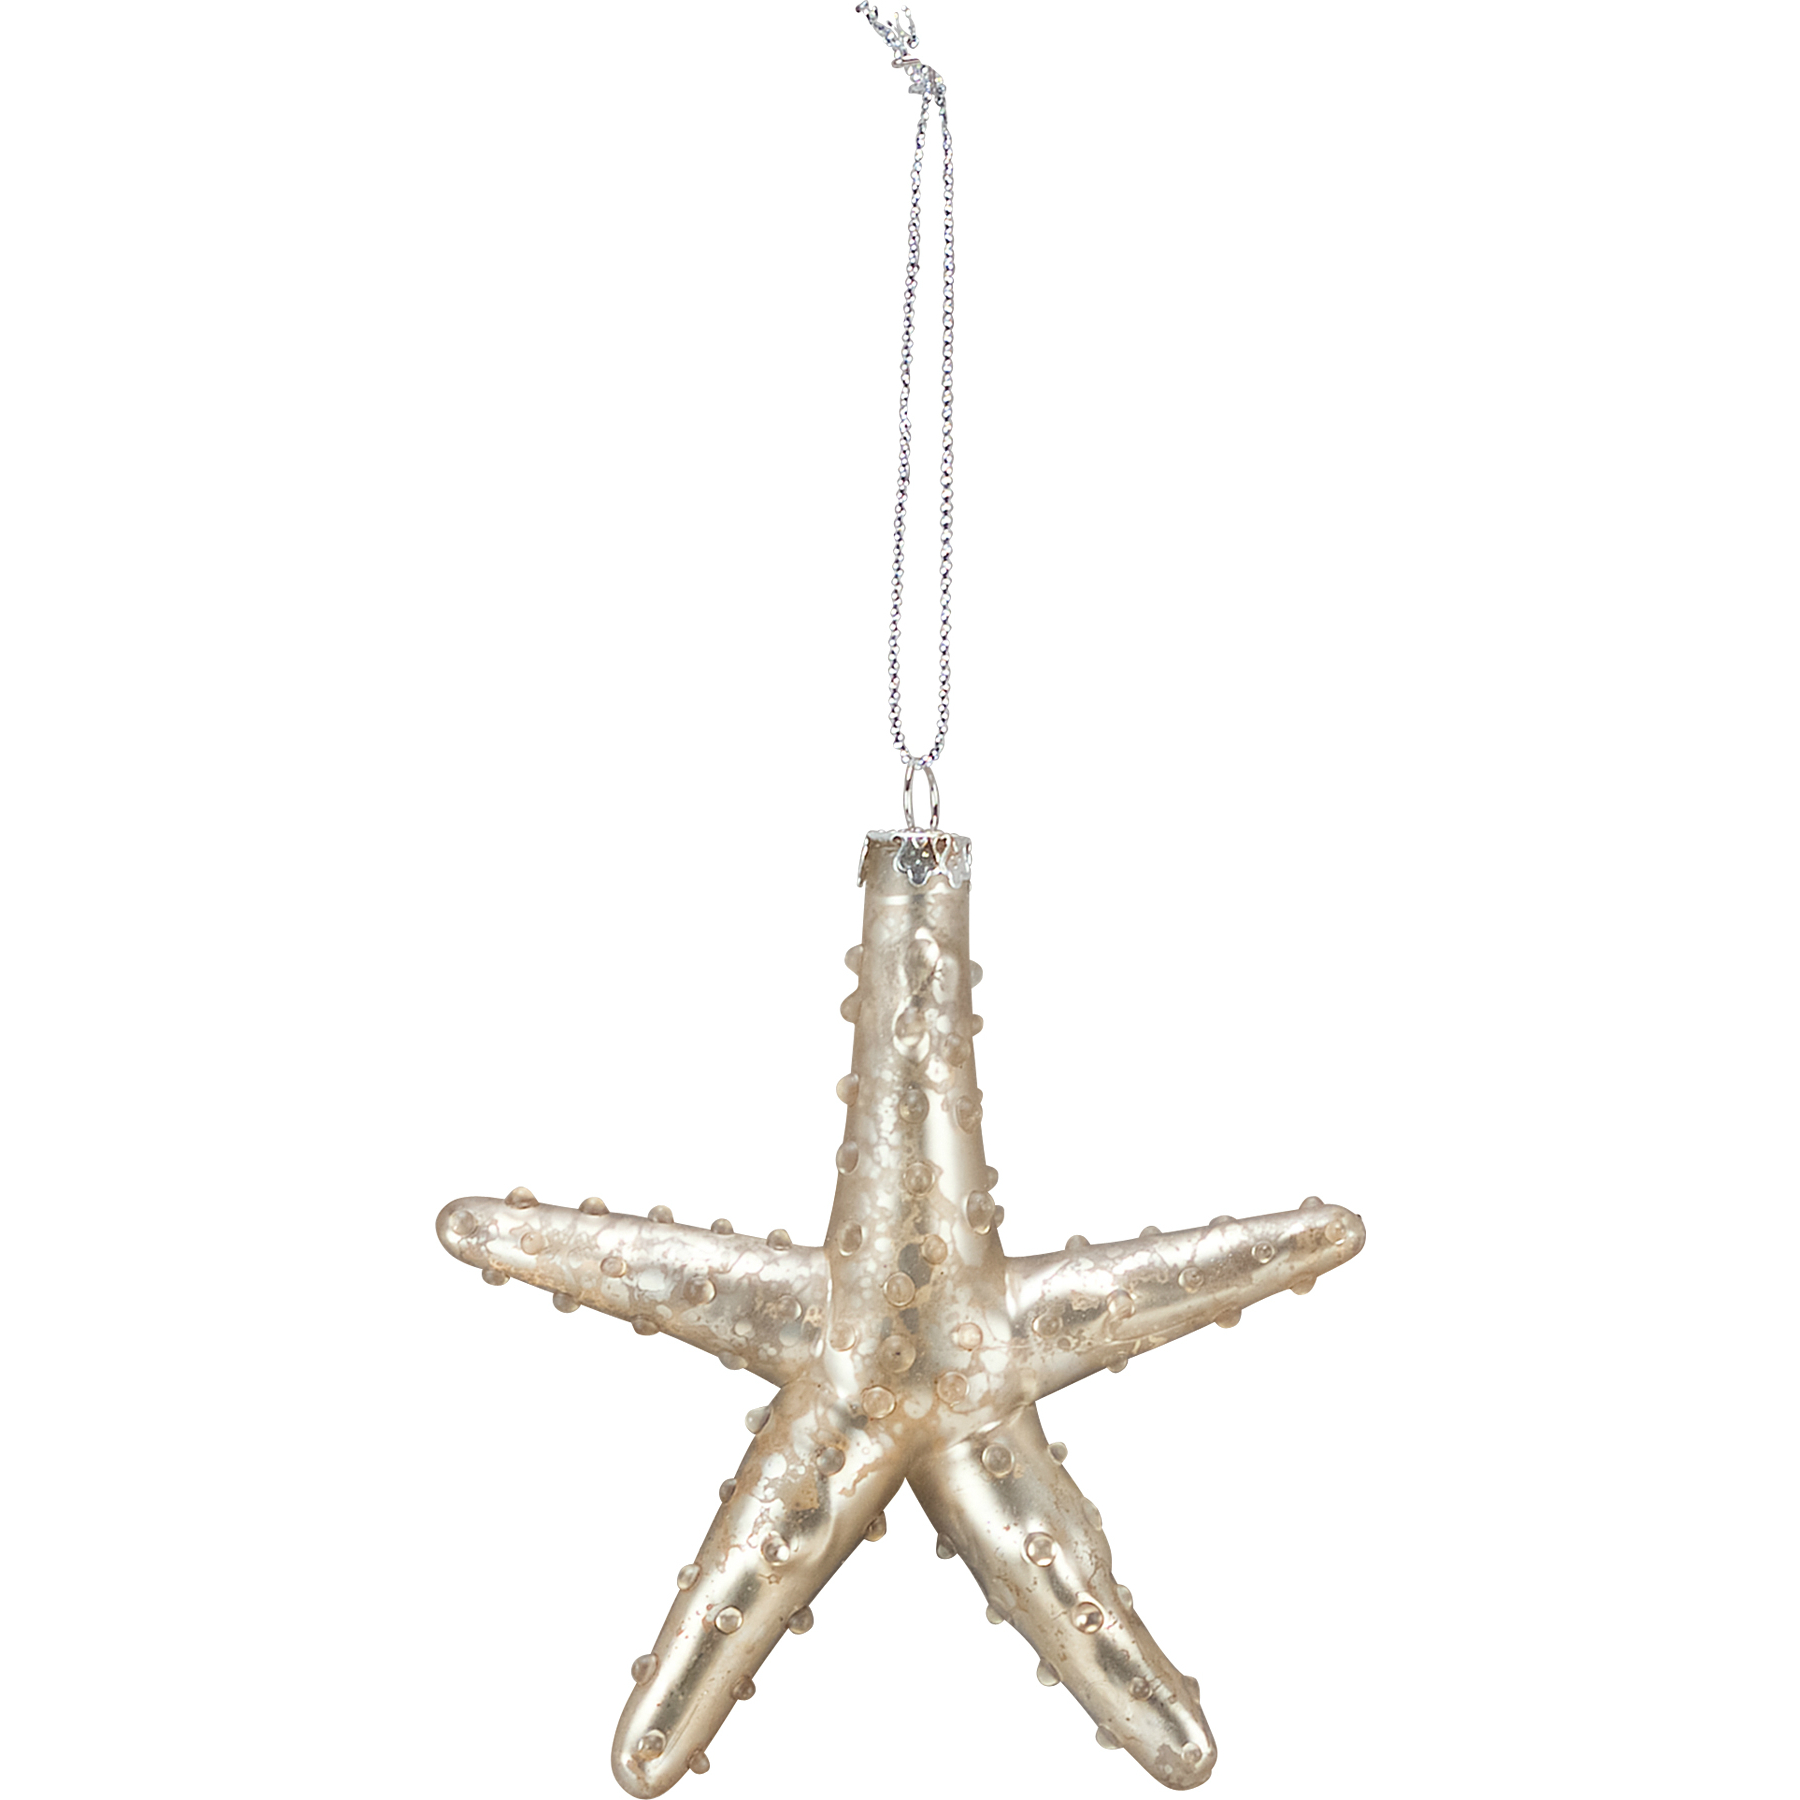 Glass Starfish Ornament